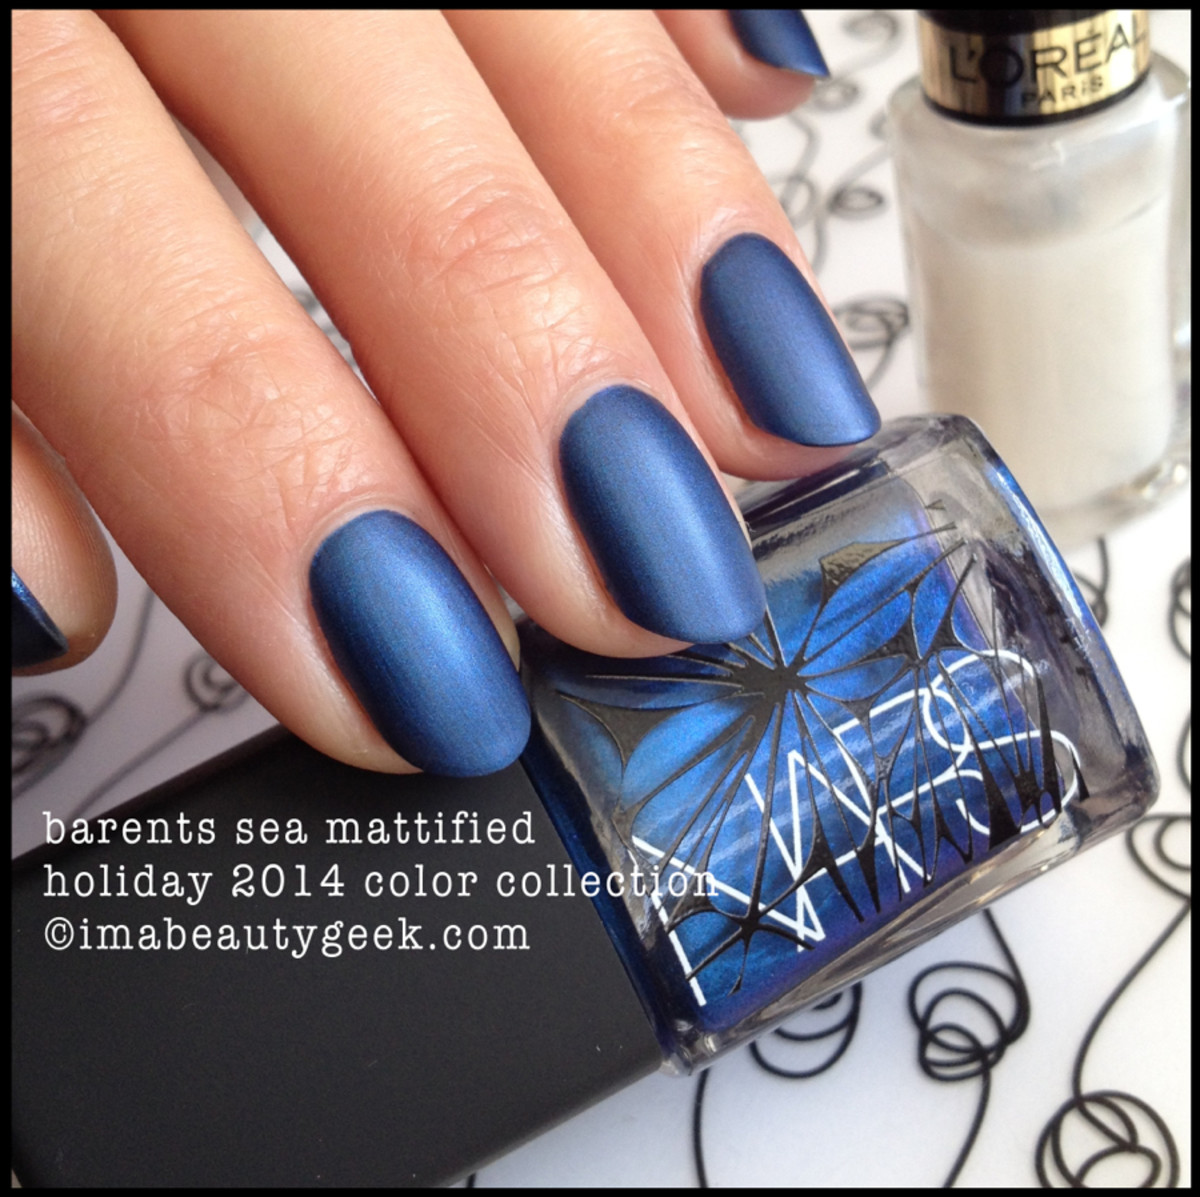 NARS Barents Sea Mattified Holiday 2014 Color Collection